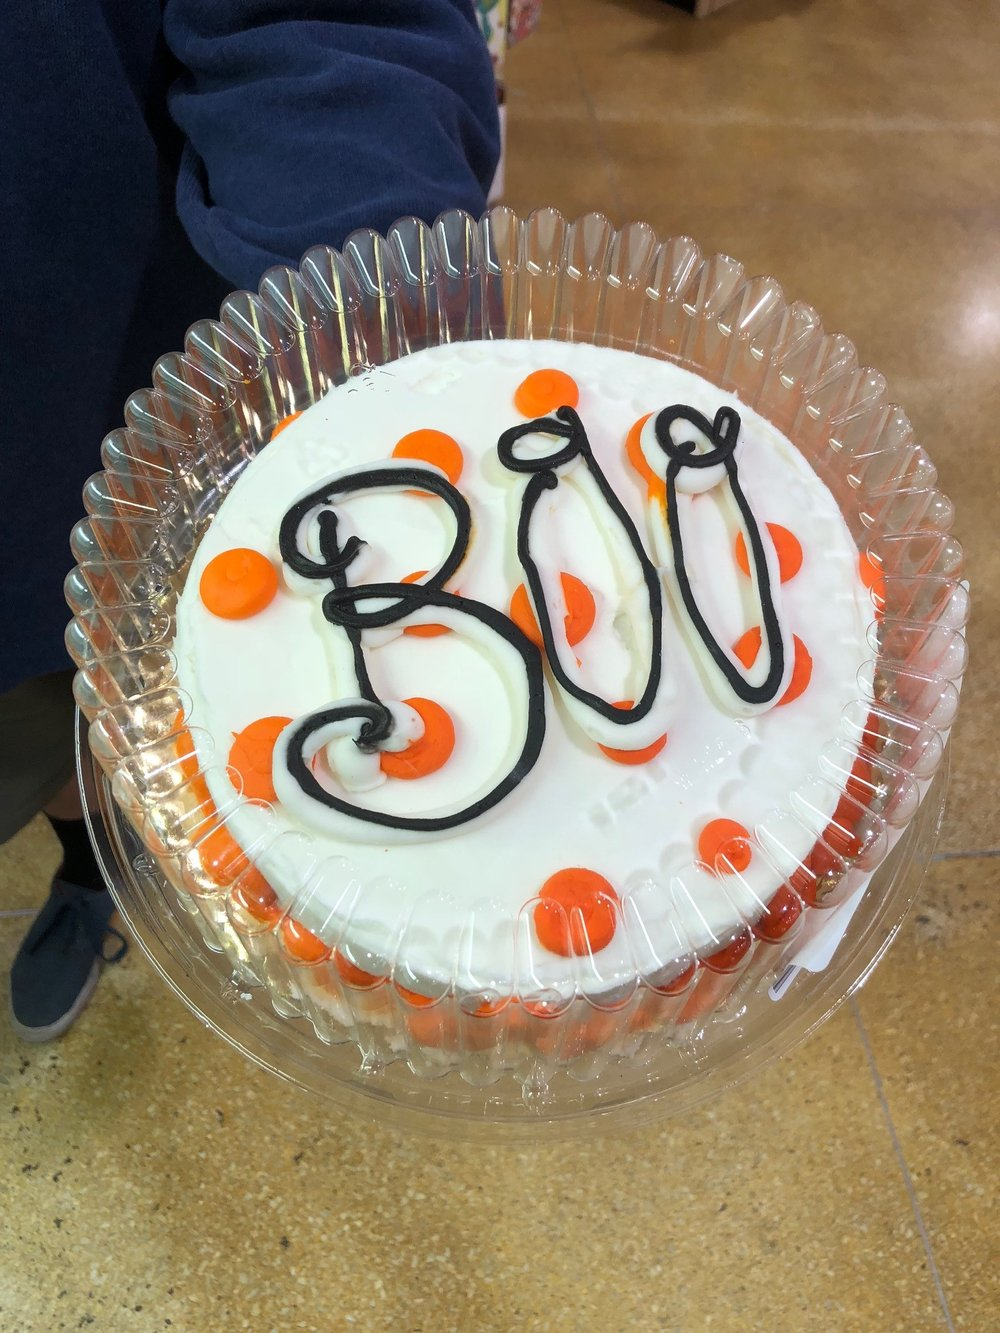 Boo Cake Jungle Jim's